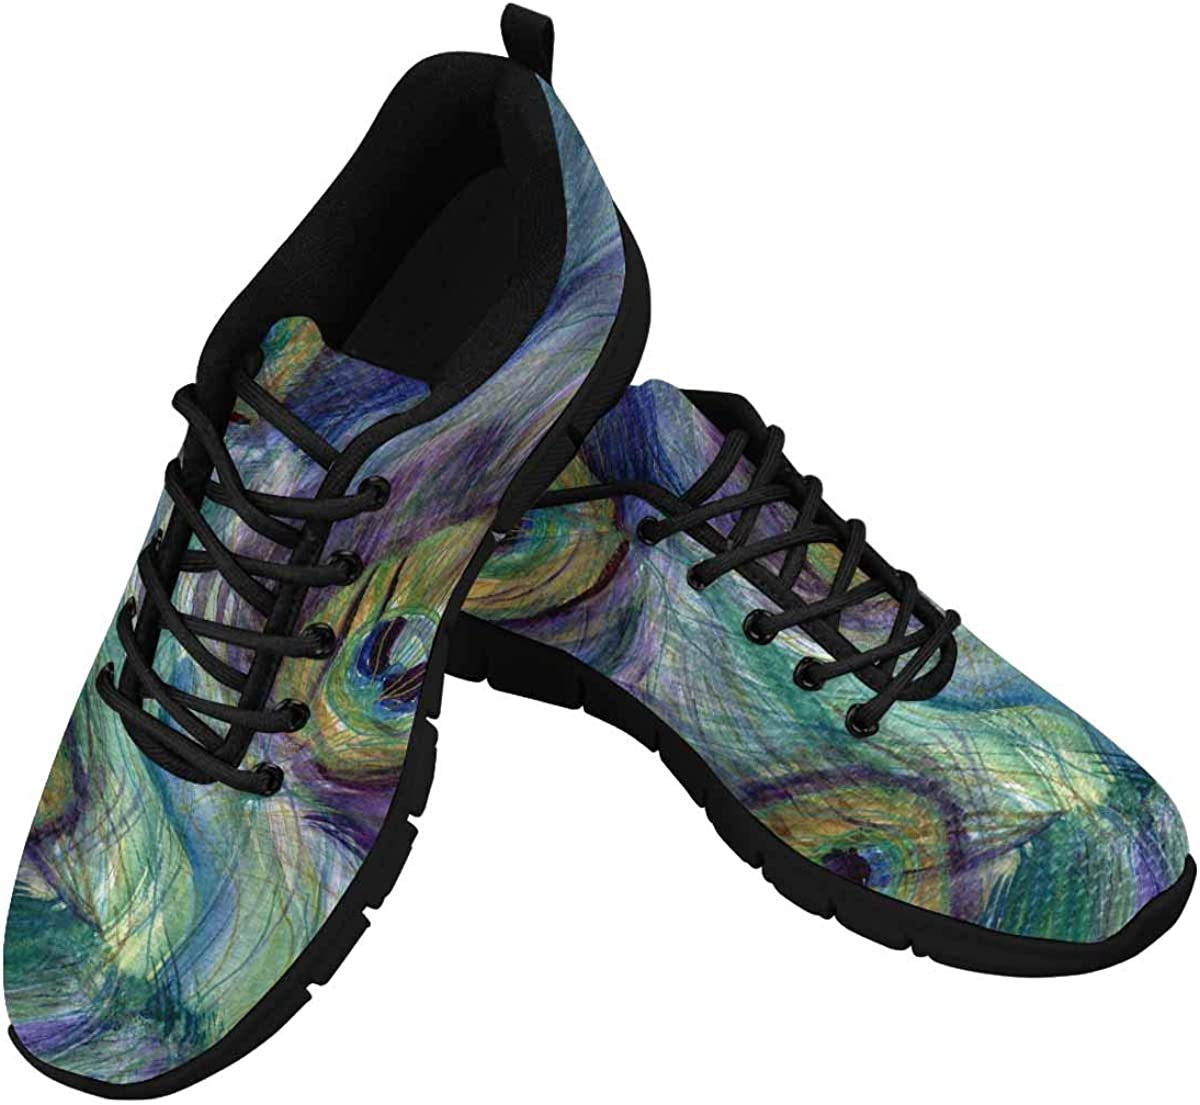 InterestPrint Feathers of Peacock Women's Athletic Walking Shoes Comfort Mesh Non Slip